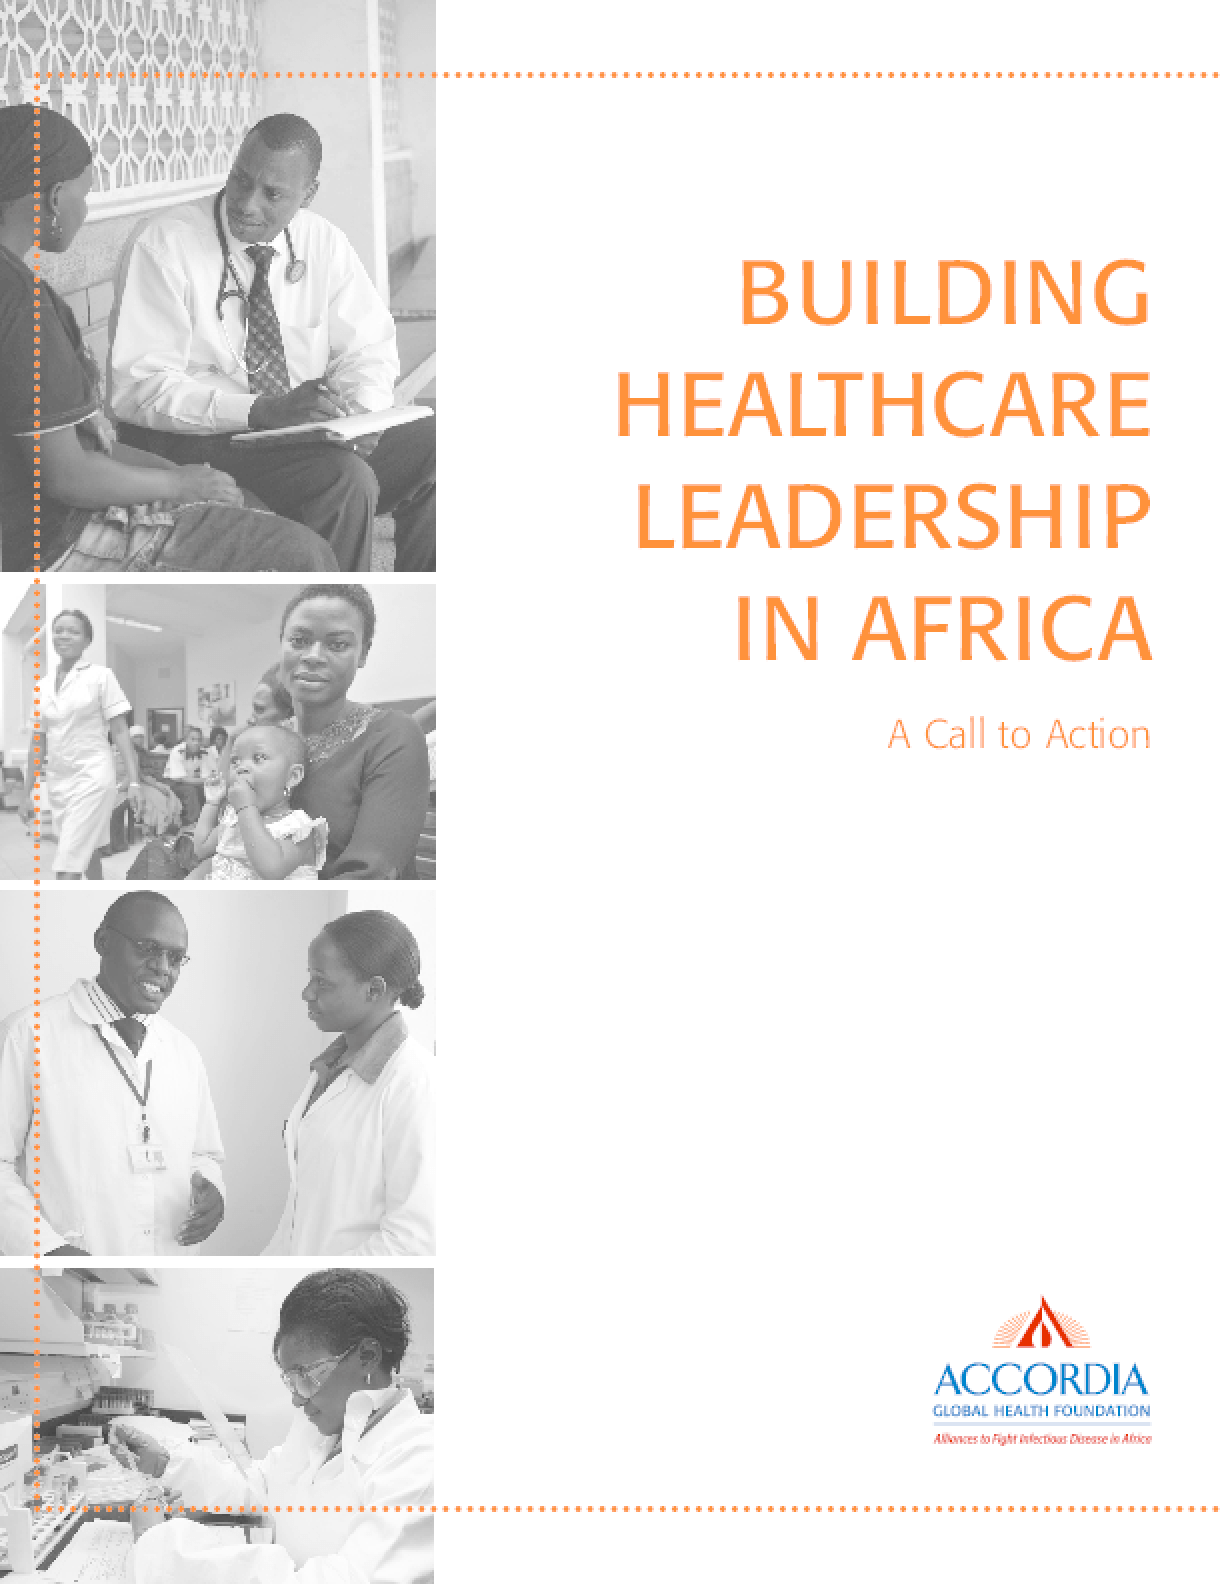 Building Healthcare Leadership in Africa: A Call to Action